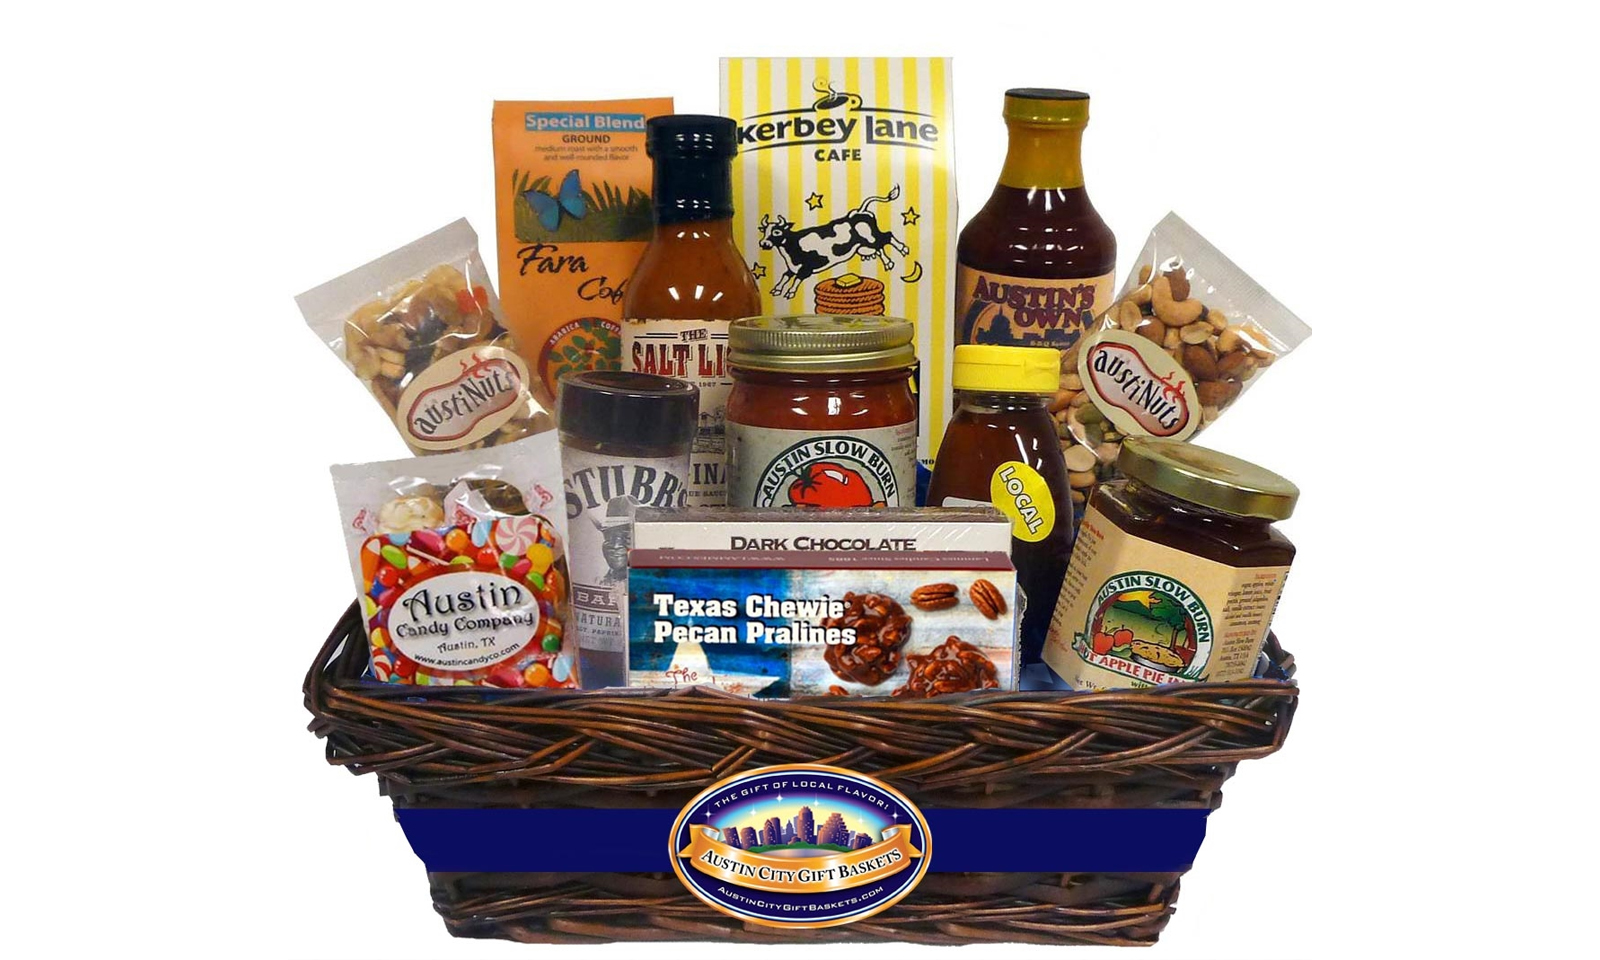 Behind the Business: Austin City Gift Baskets